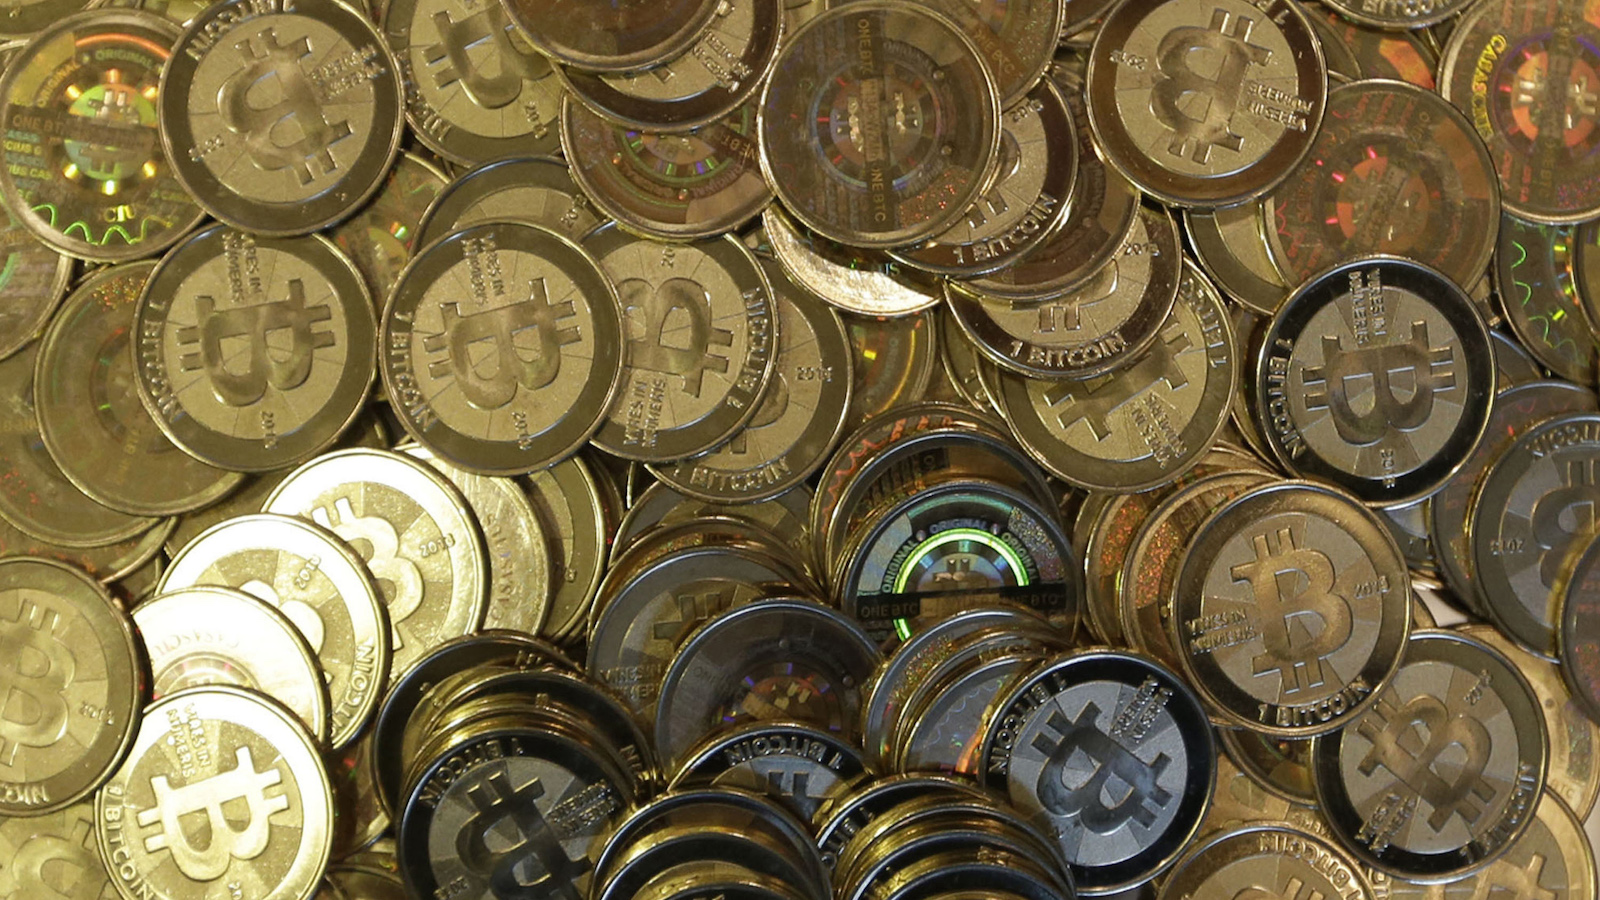 FILE - This April 3, 2013 file photo shows bitcoin tokens in Sandy, Utah.  The website of major bitcoin exchange Mt. Gox is offline Tuesday, Feb. 25, 2014, amid reports it suffered a debilitating theft, a new setback for efforts to gain legitimacy for the virtual currency.